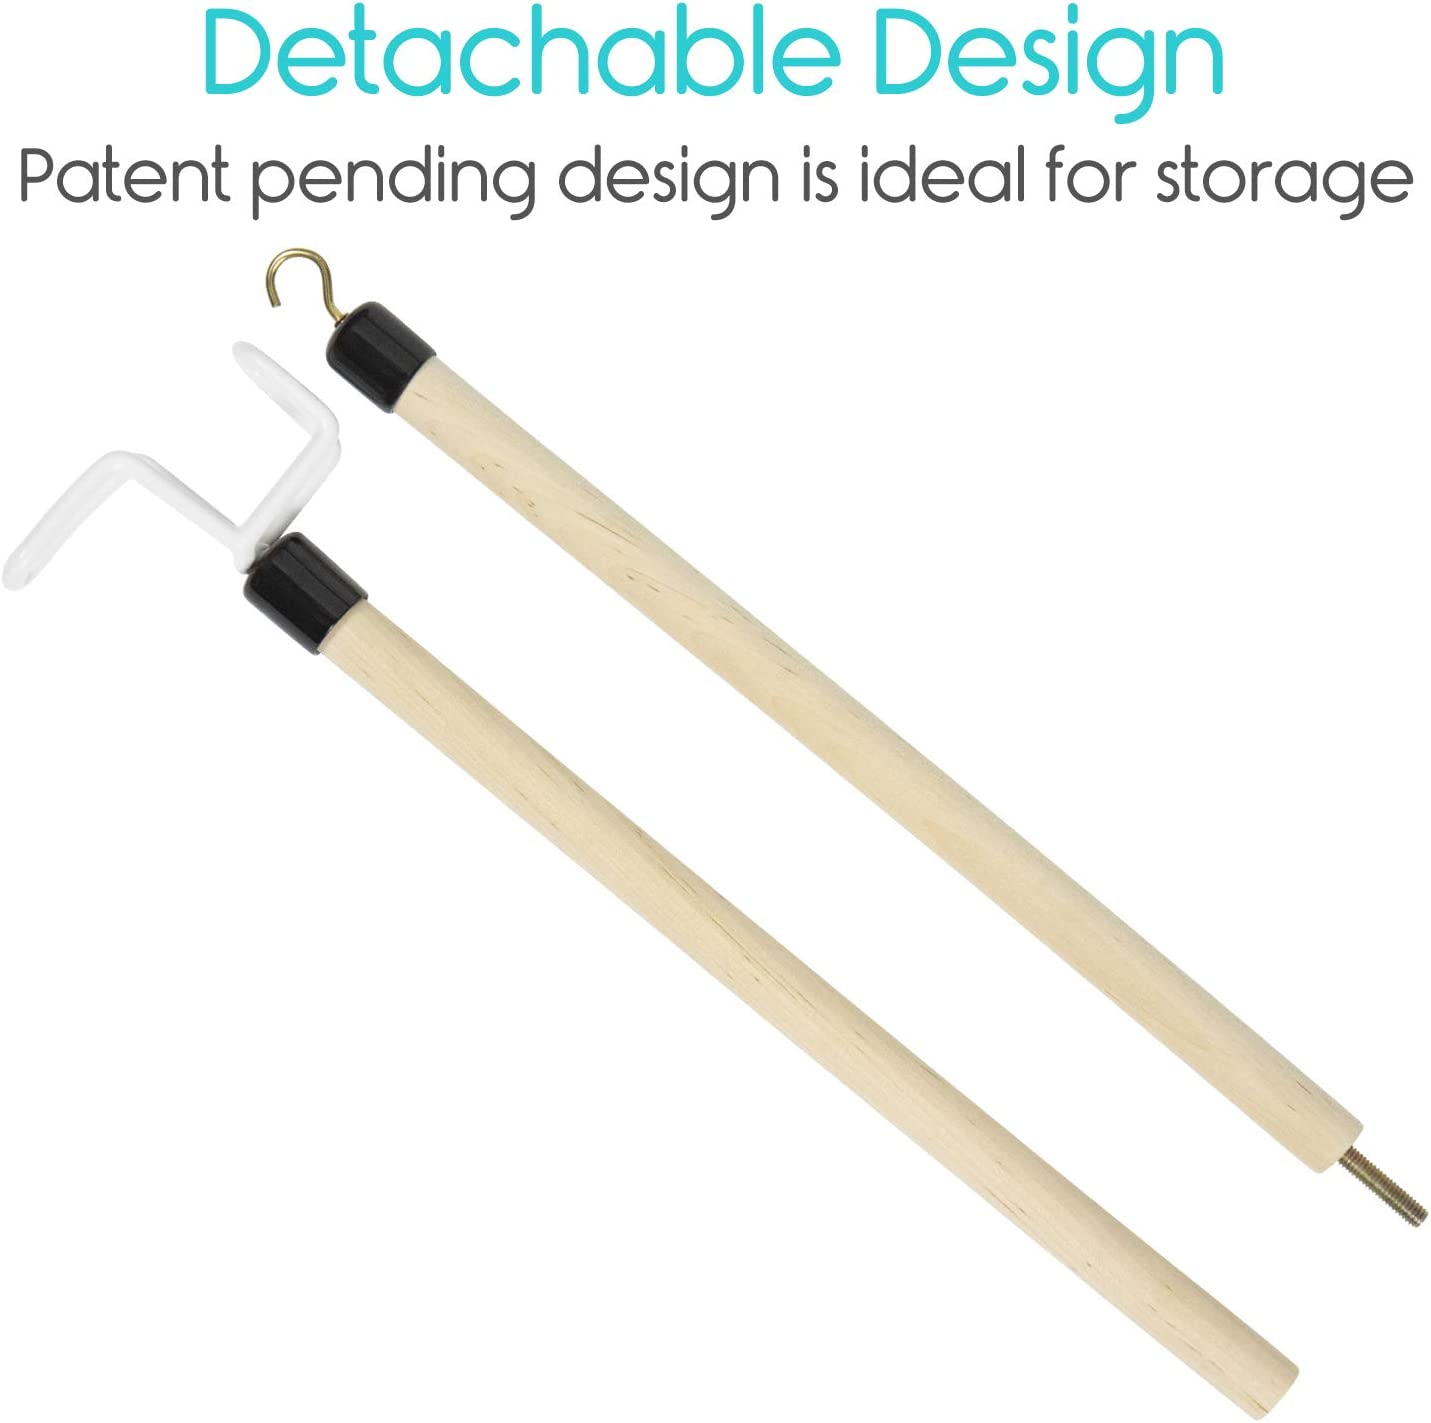 Vive Dressing Stick with Zipper Puller (27 Inch) - Sock Remover Tool - Independent Living Aid - Elderly, Seniors, Disabled, Men, Women - Mobility Helper for Compression Stockings, Dress, Jacket, Pants: Health & Personal Care